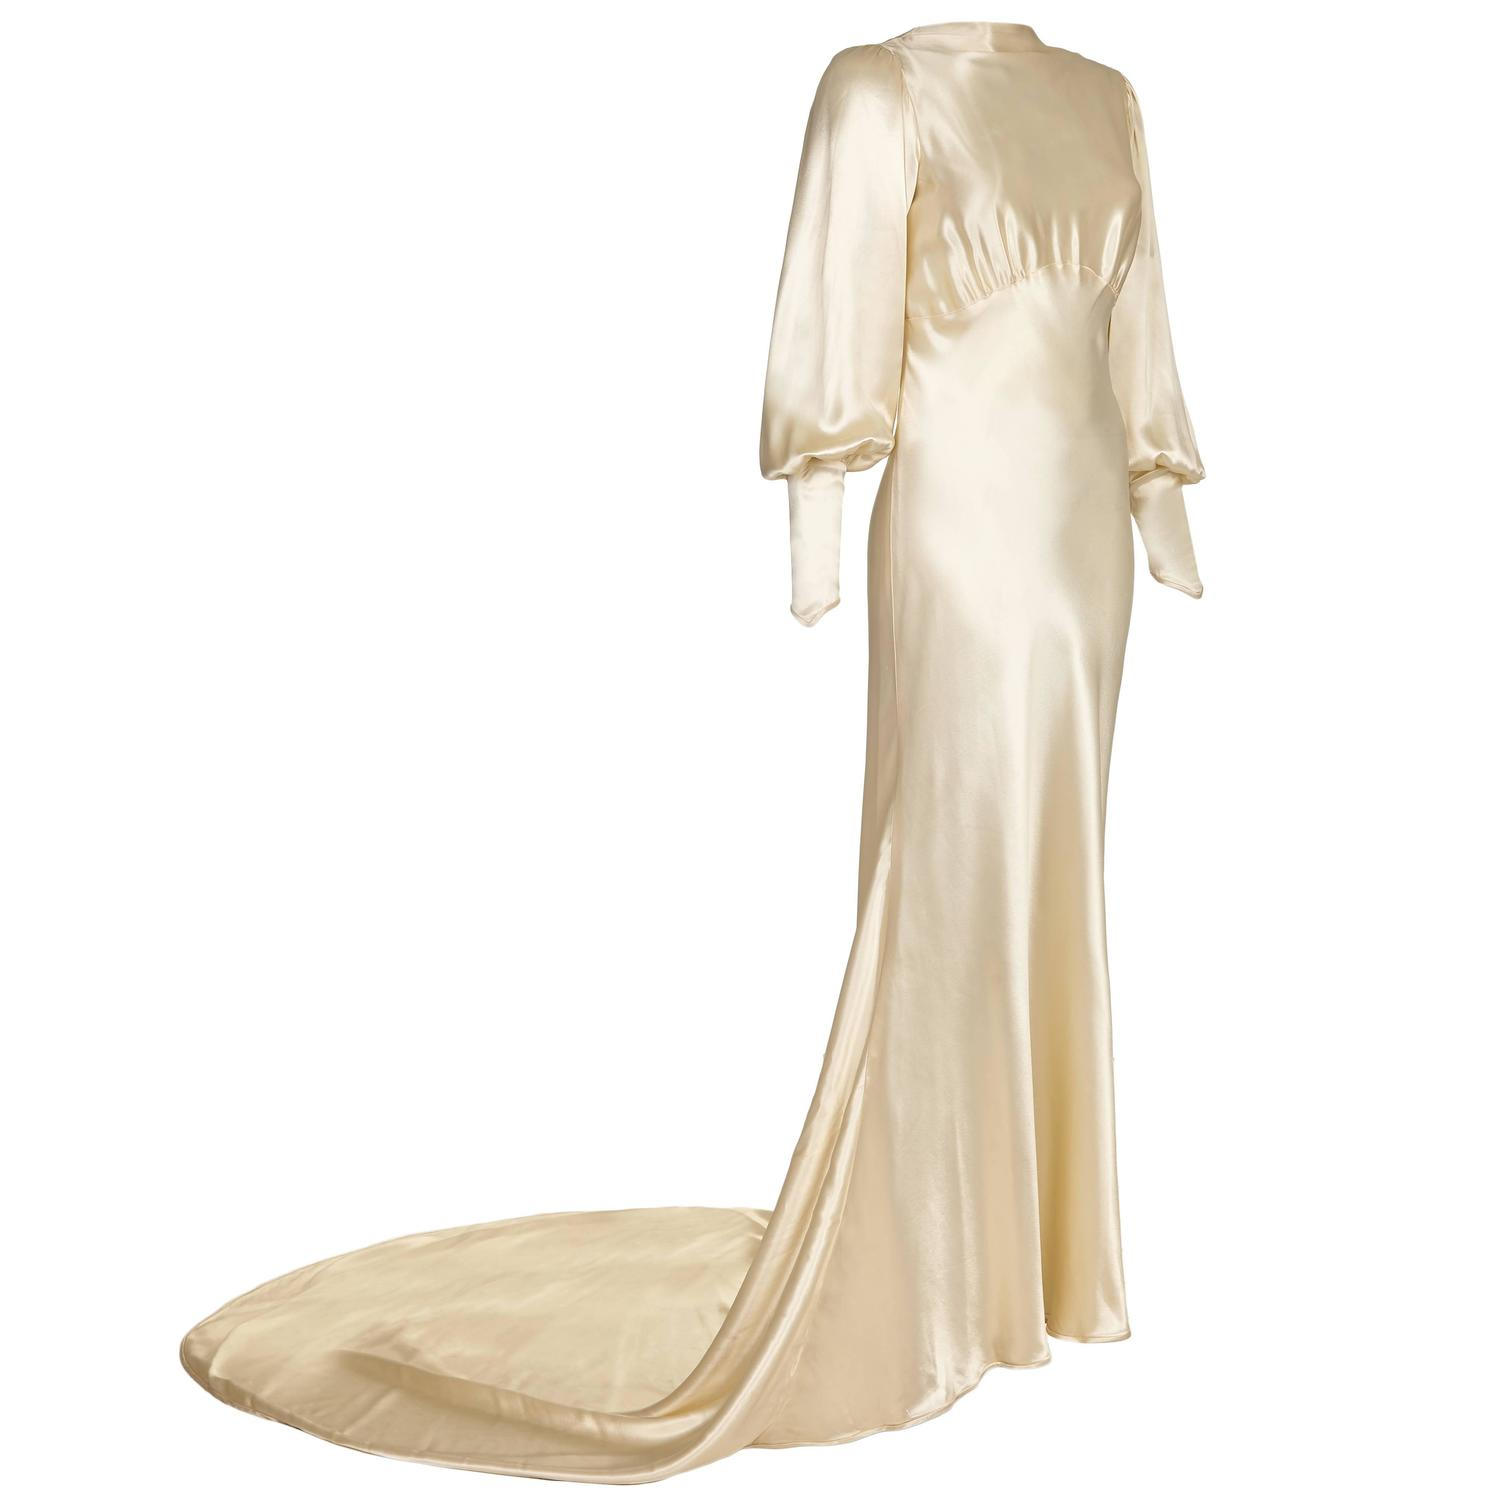 1930s silk satin bias cut ivory wedding dress at 1stdibs for Satin silk wedding dresses